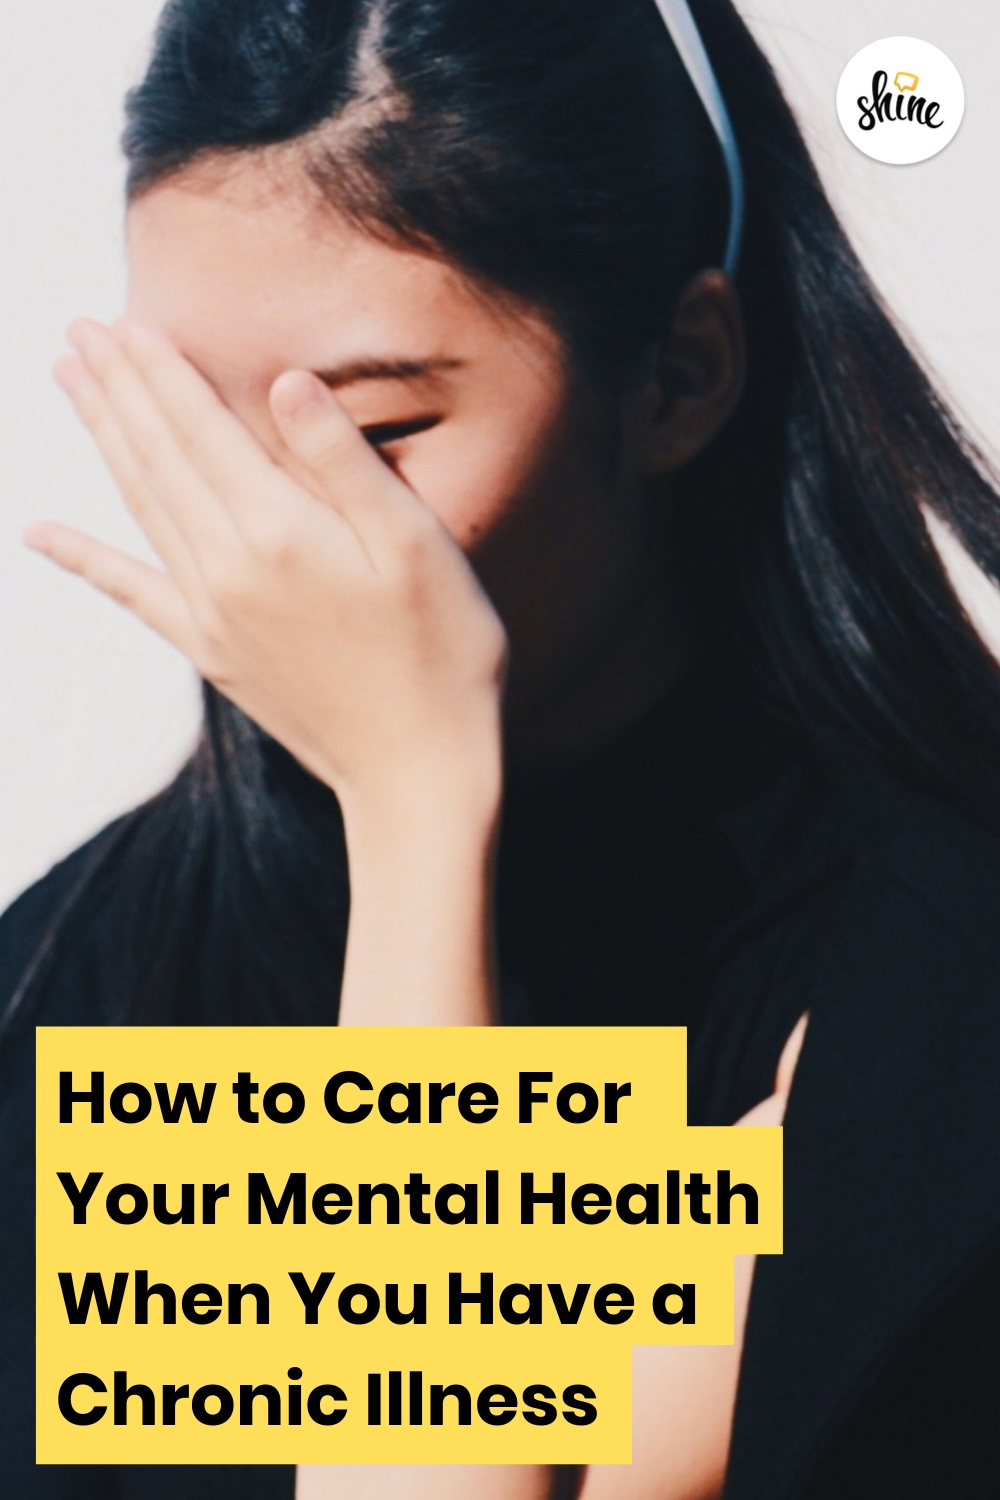 How to care for your mental health when you have a chronic illness